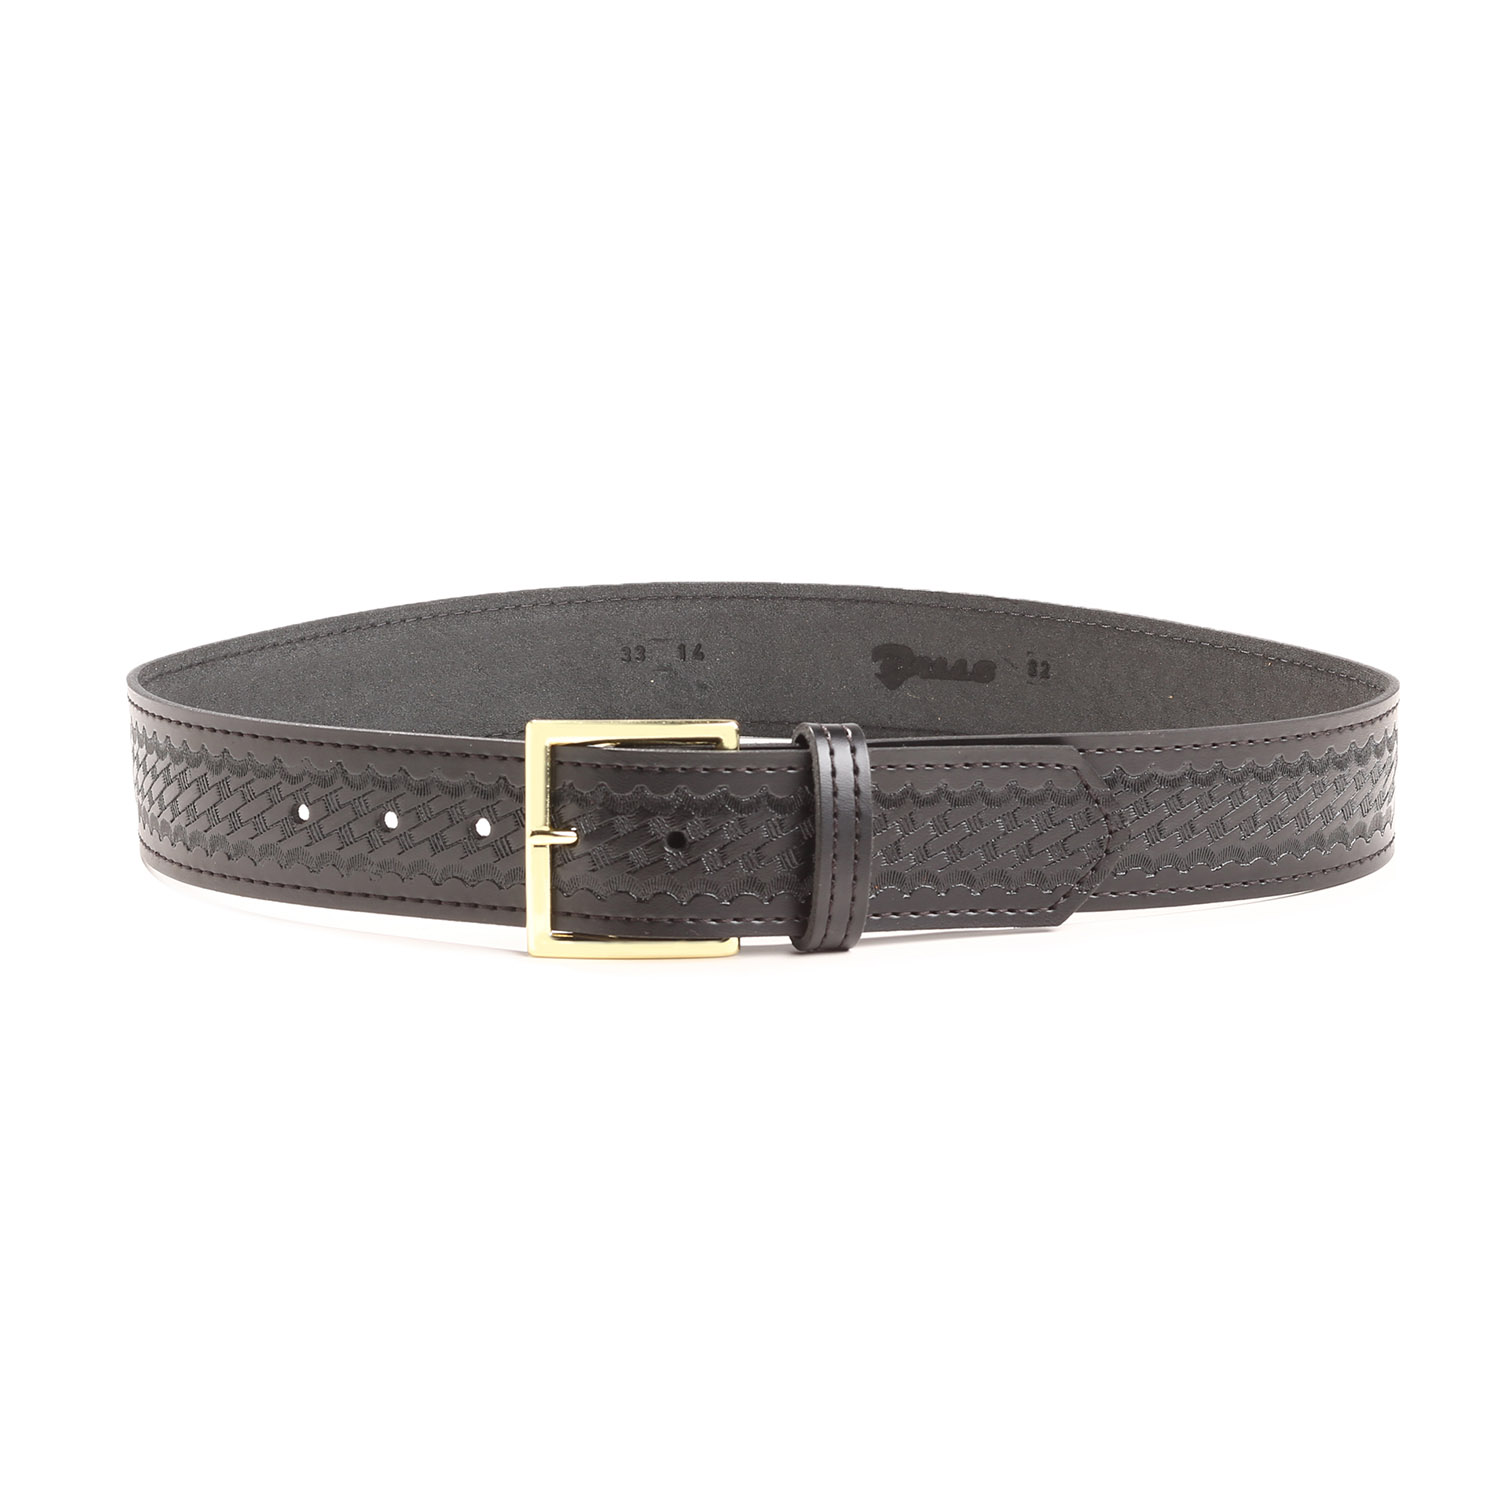 Galls Gear Leather Trouser Belt